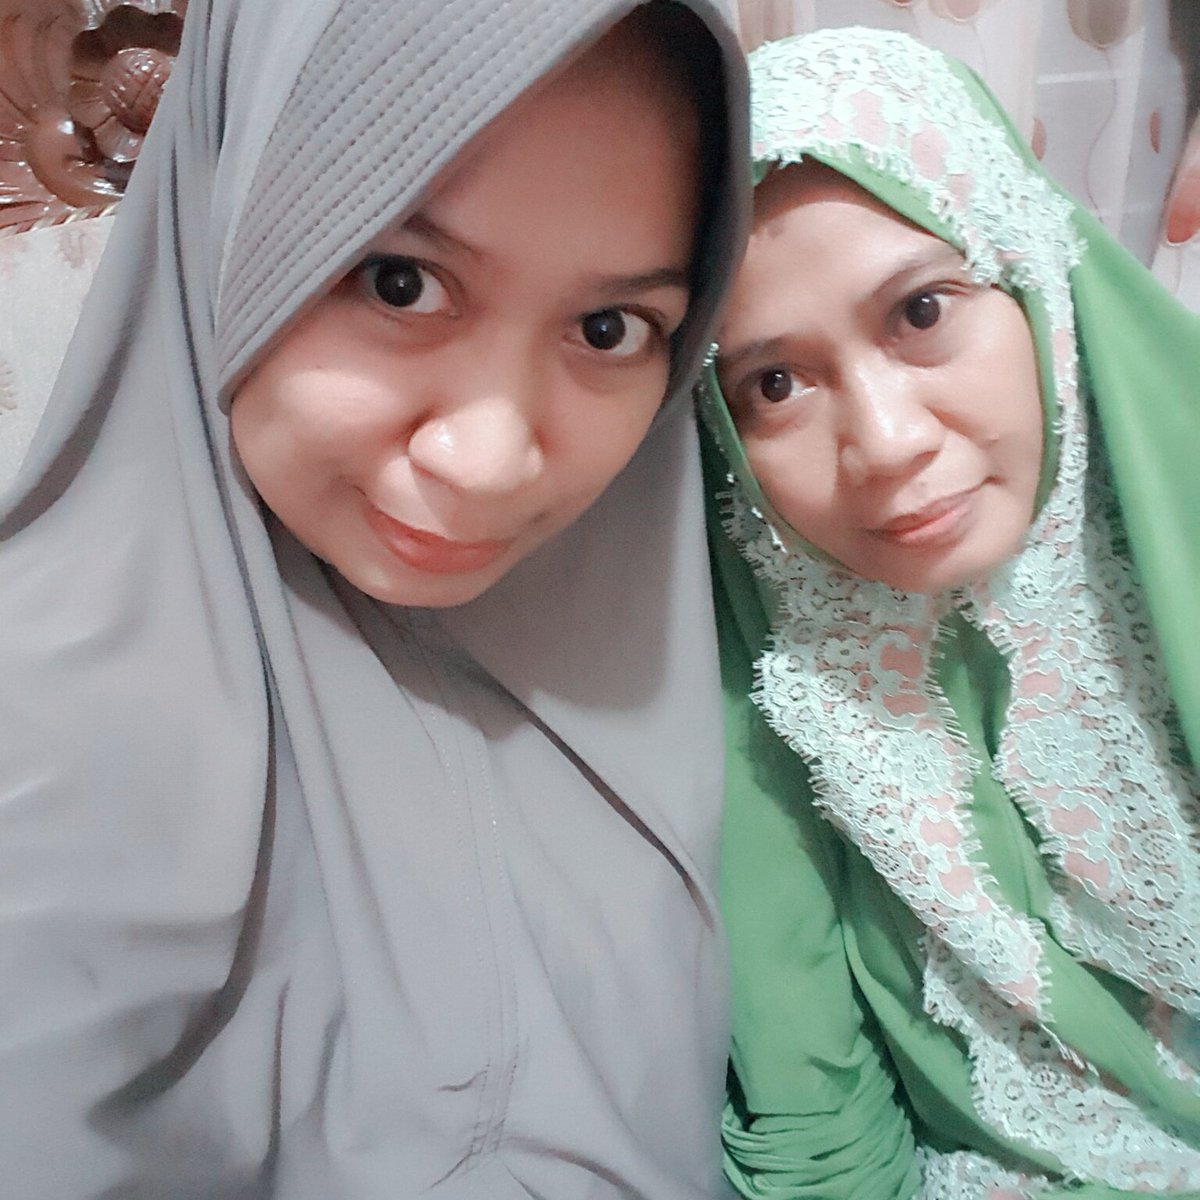 Last n8 with My Lovely Love Sist at humz 😁😀